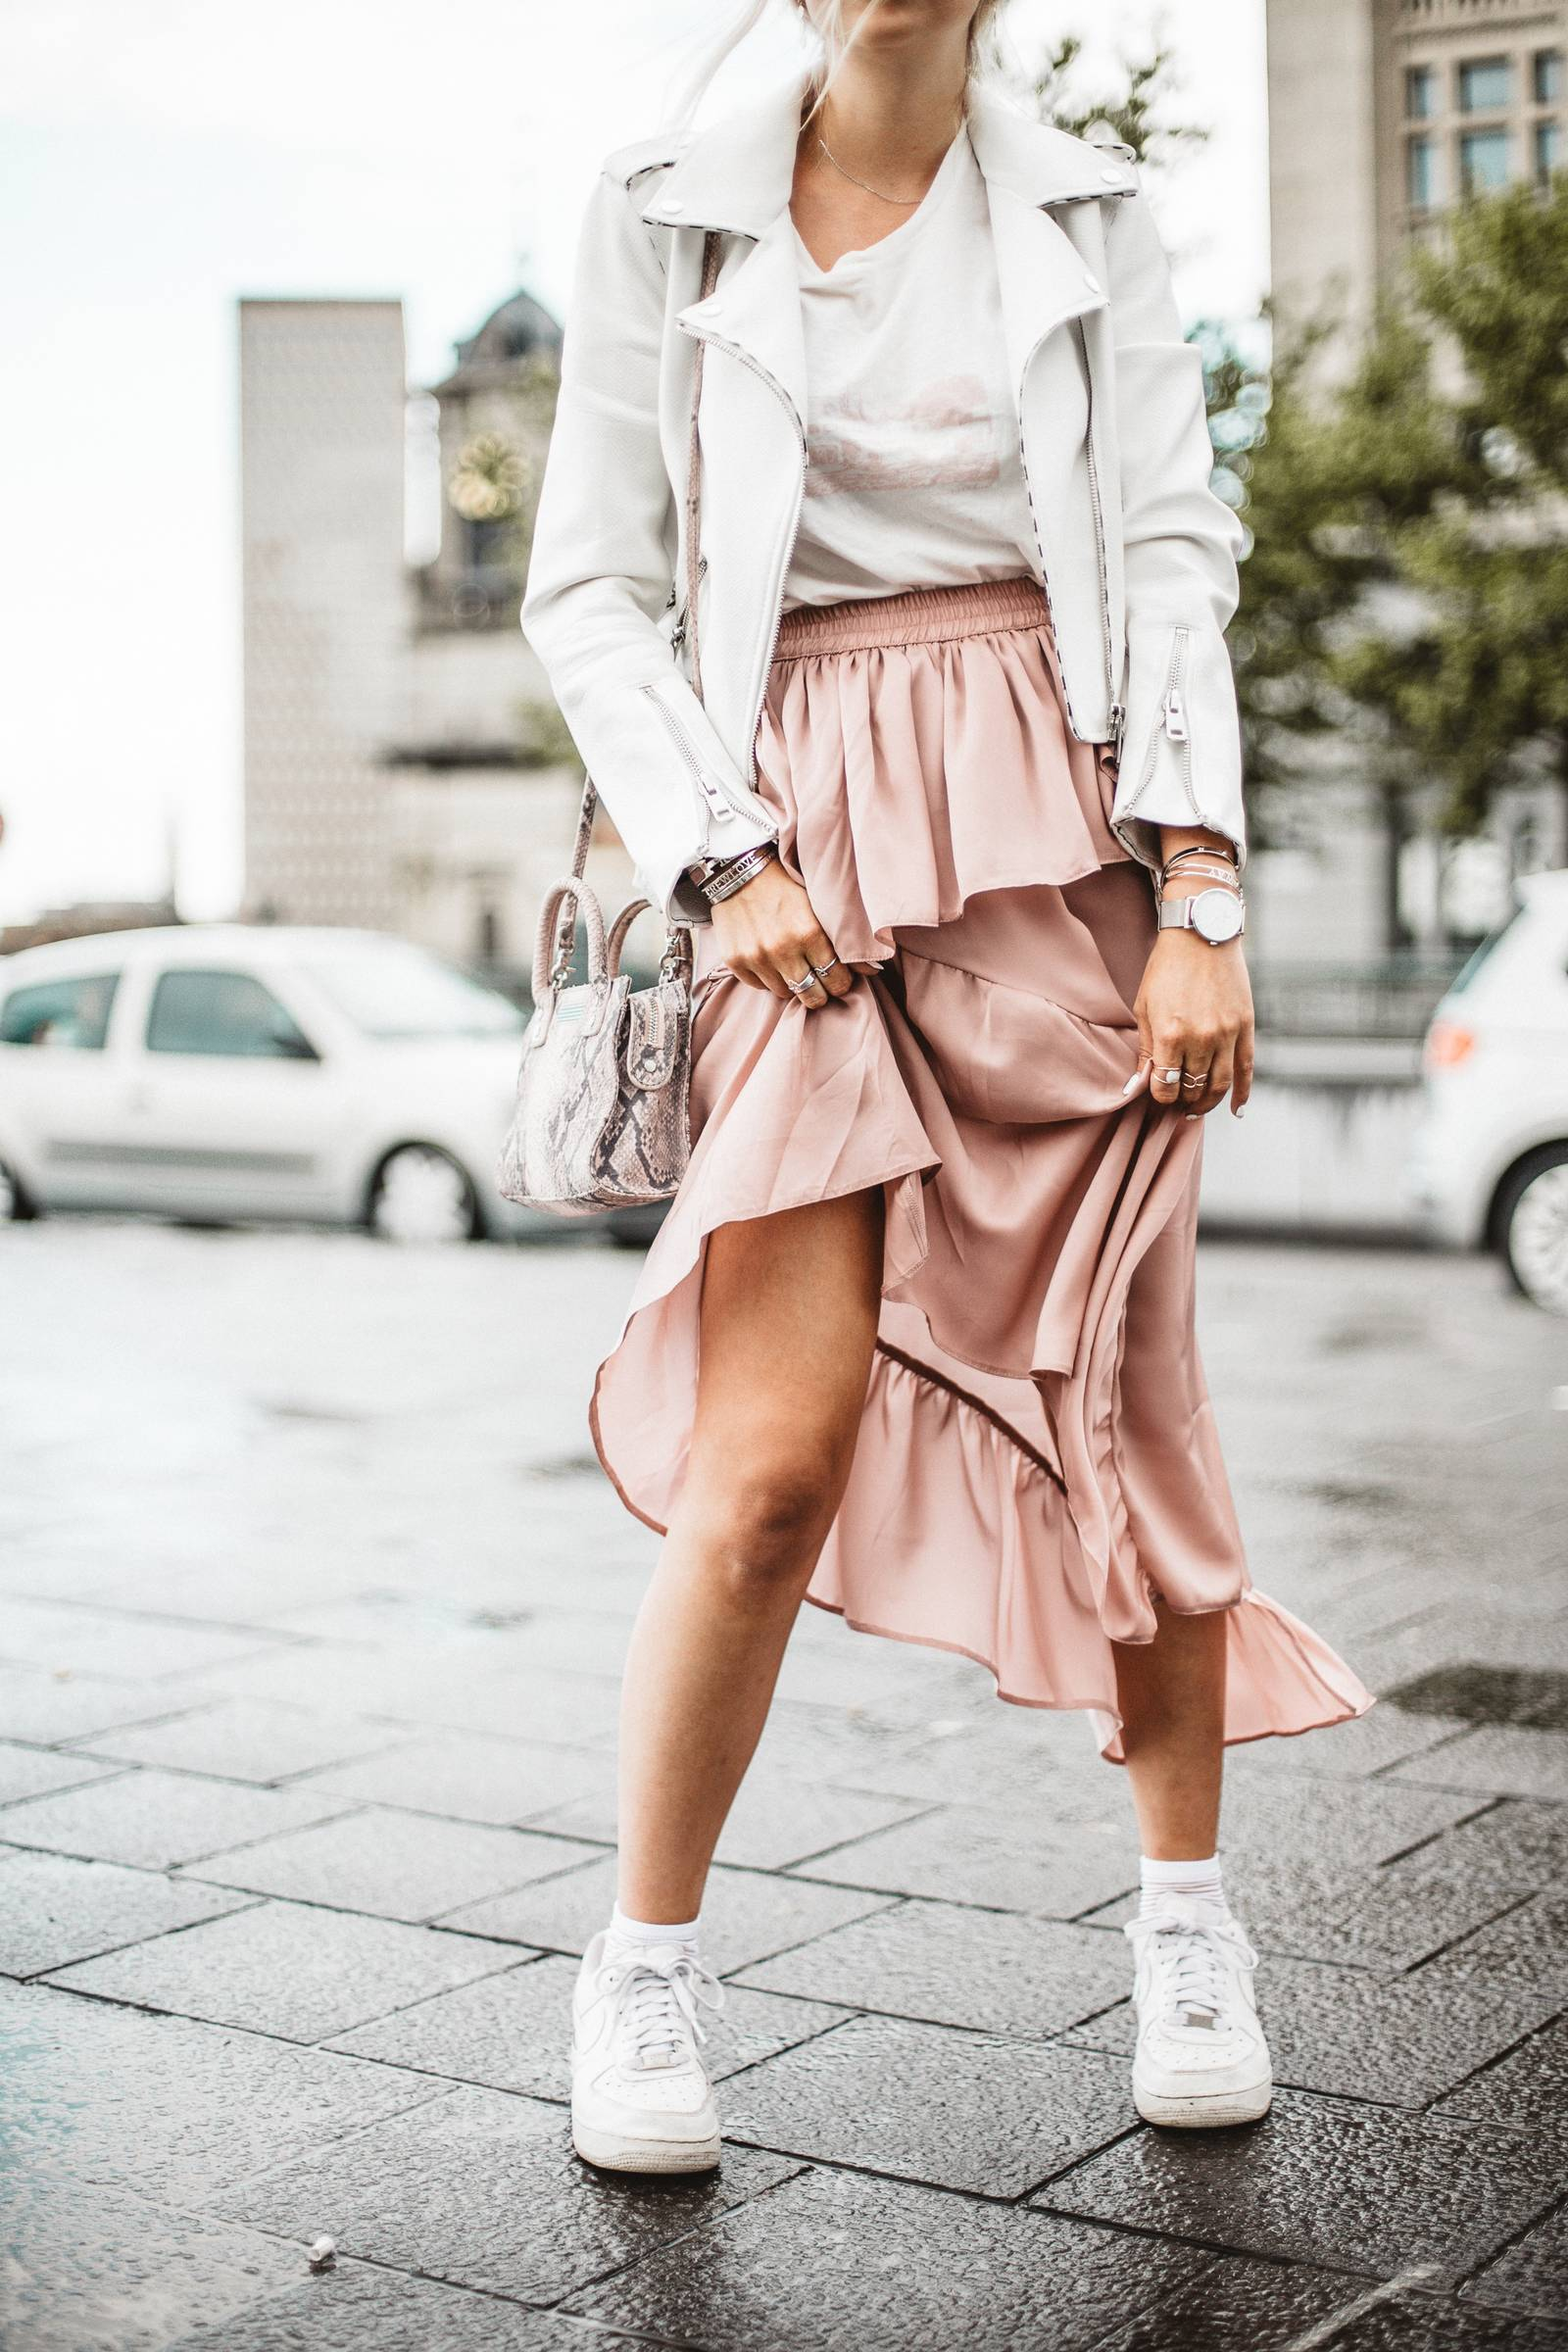 Asymetric skirt and white leather jacket